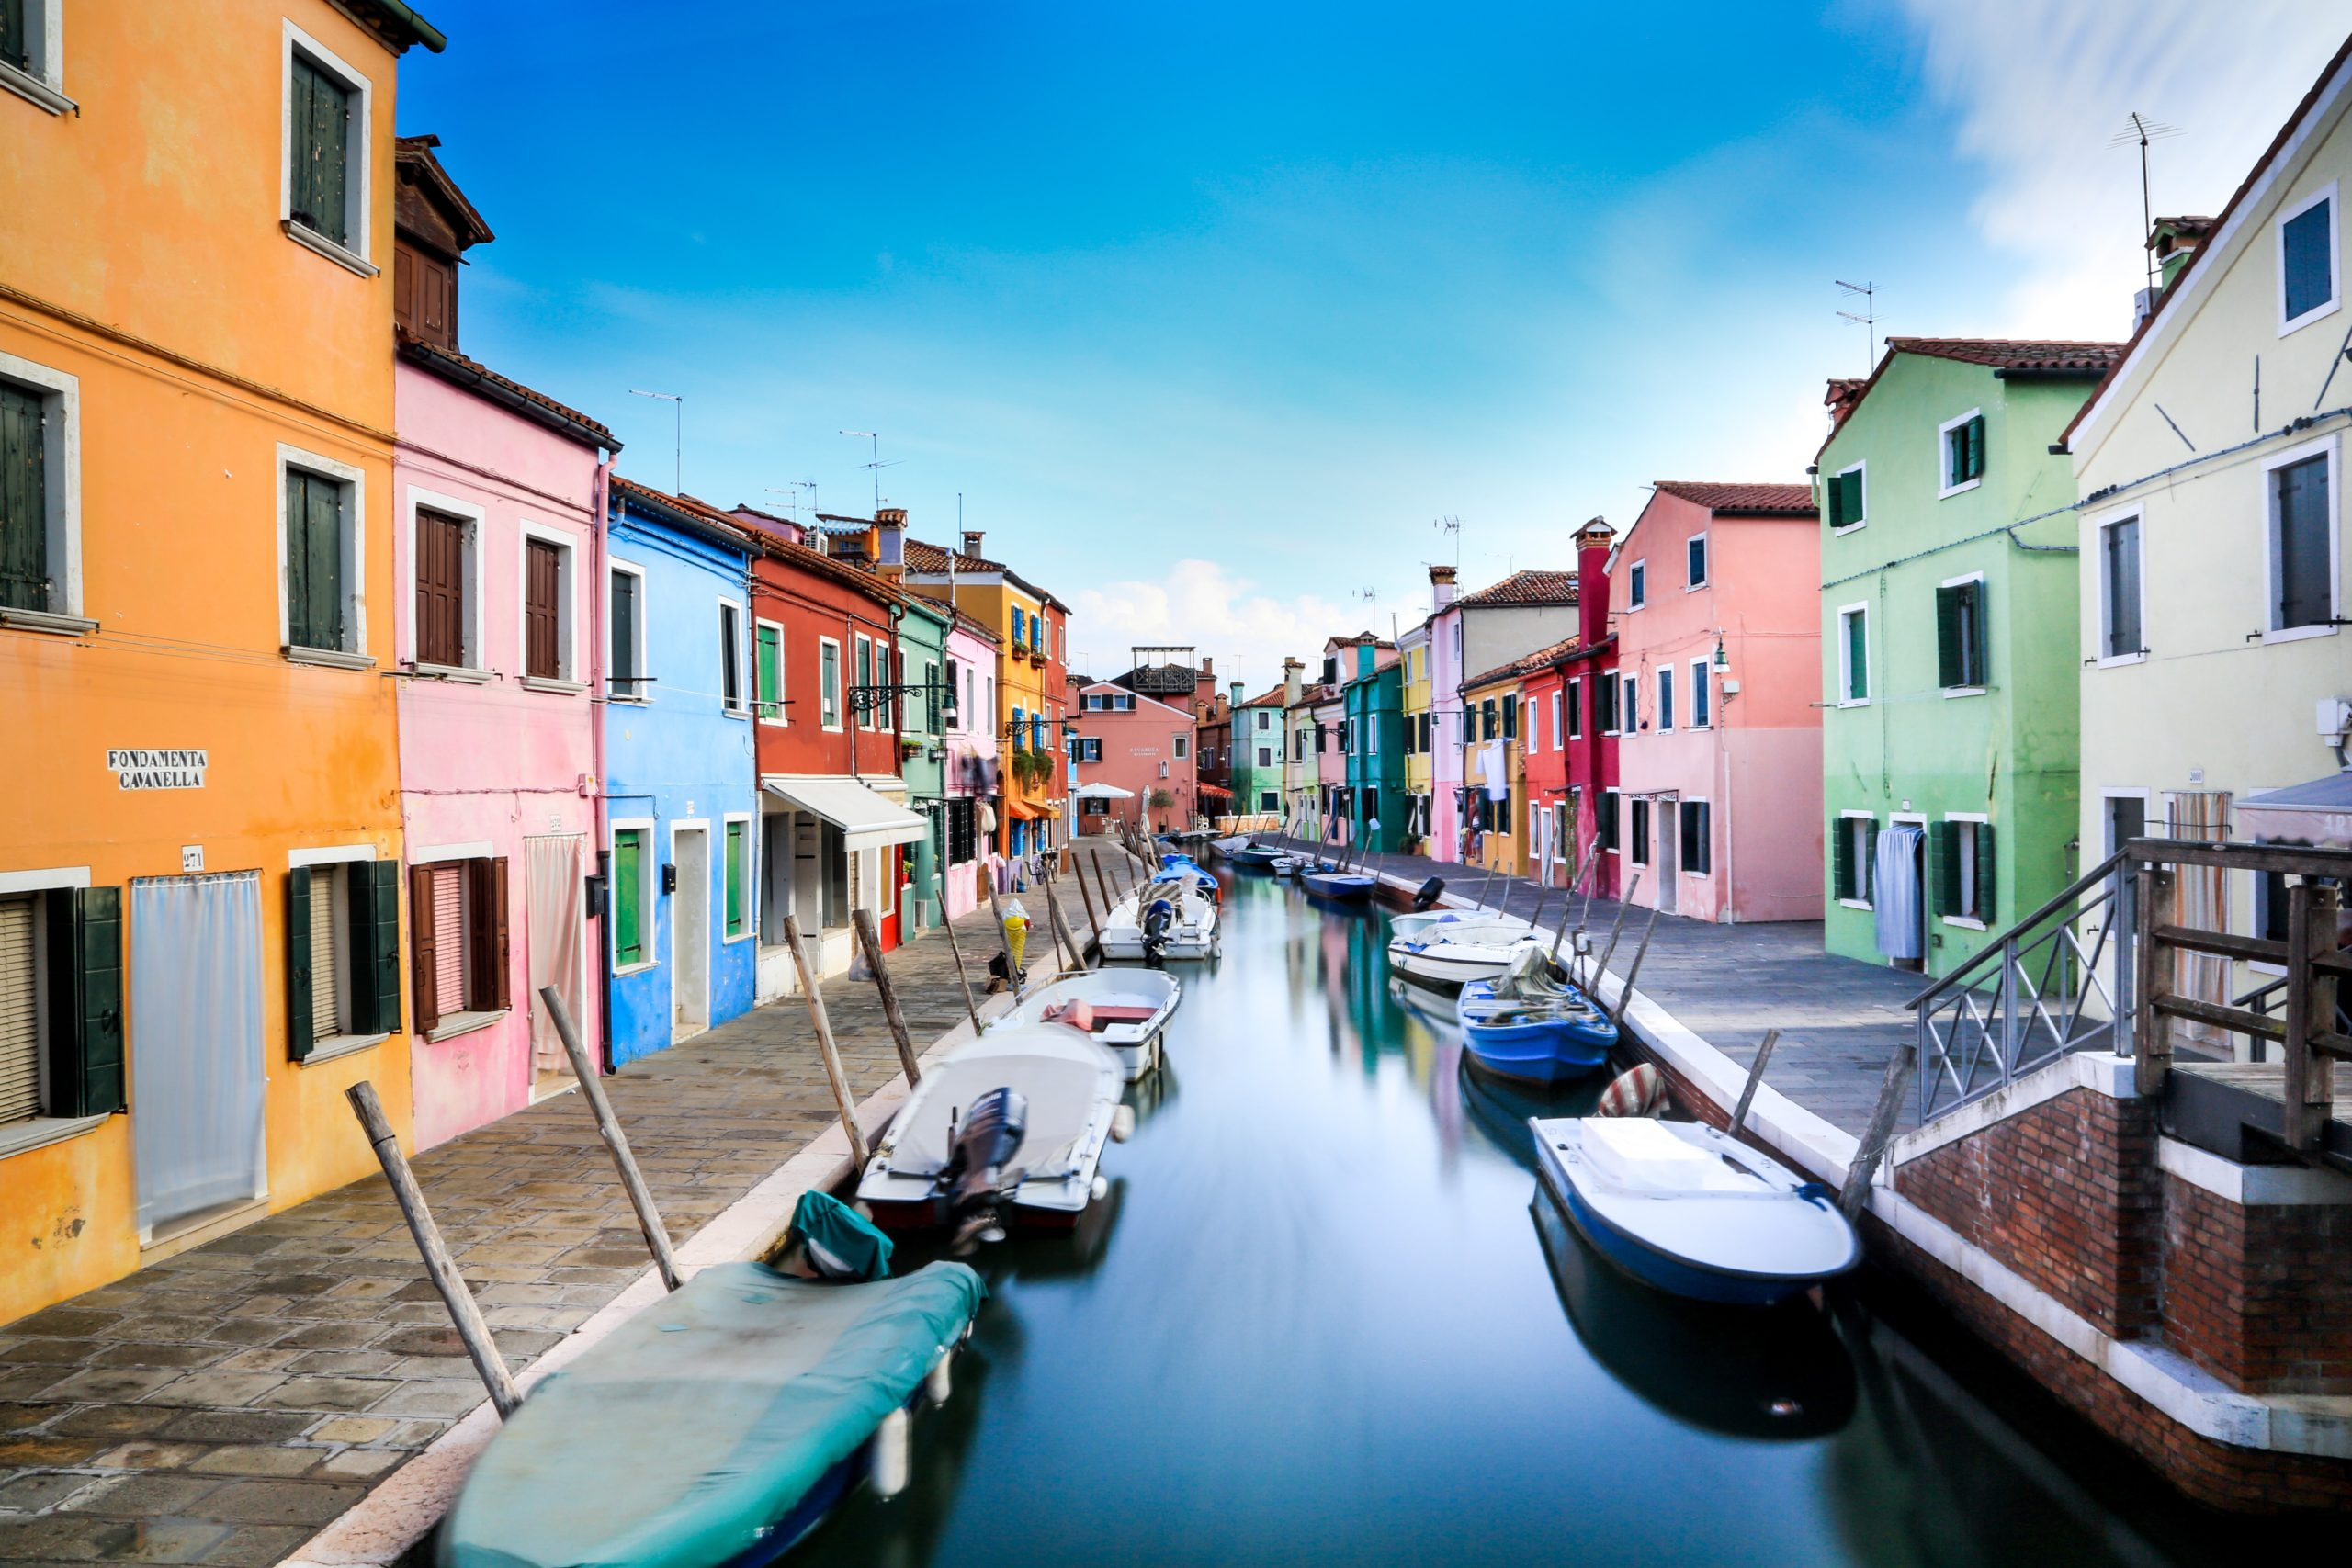 Burano in Venice, colorful homes and buildings